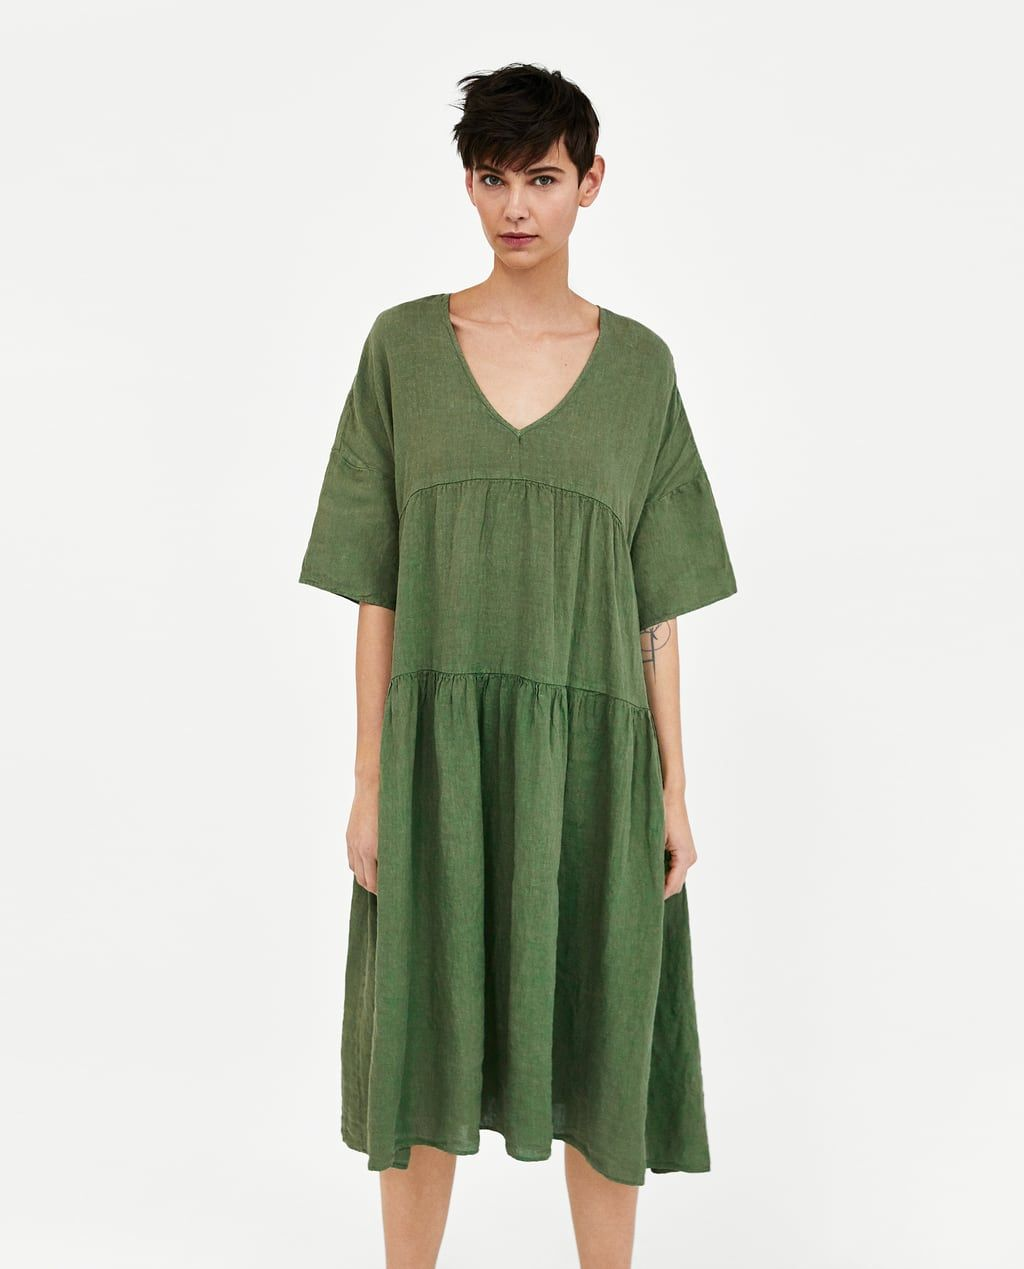 54a50ca552 Image 3 of OVERSIZED LINEN DRESS from Zara Zara, Ruhák, Stílus, Ruha